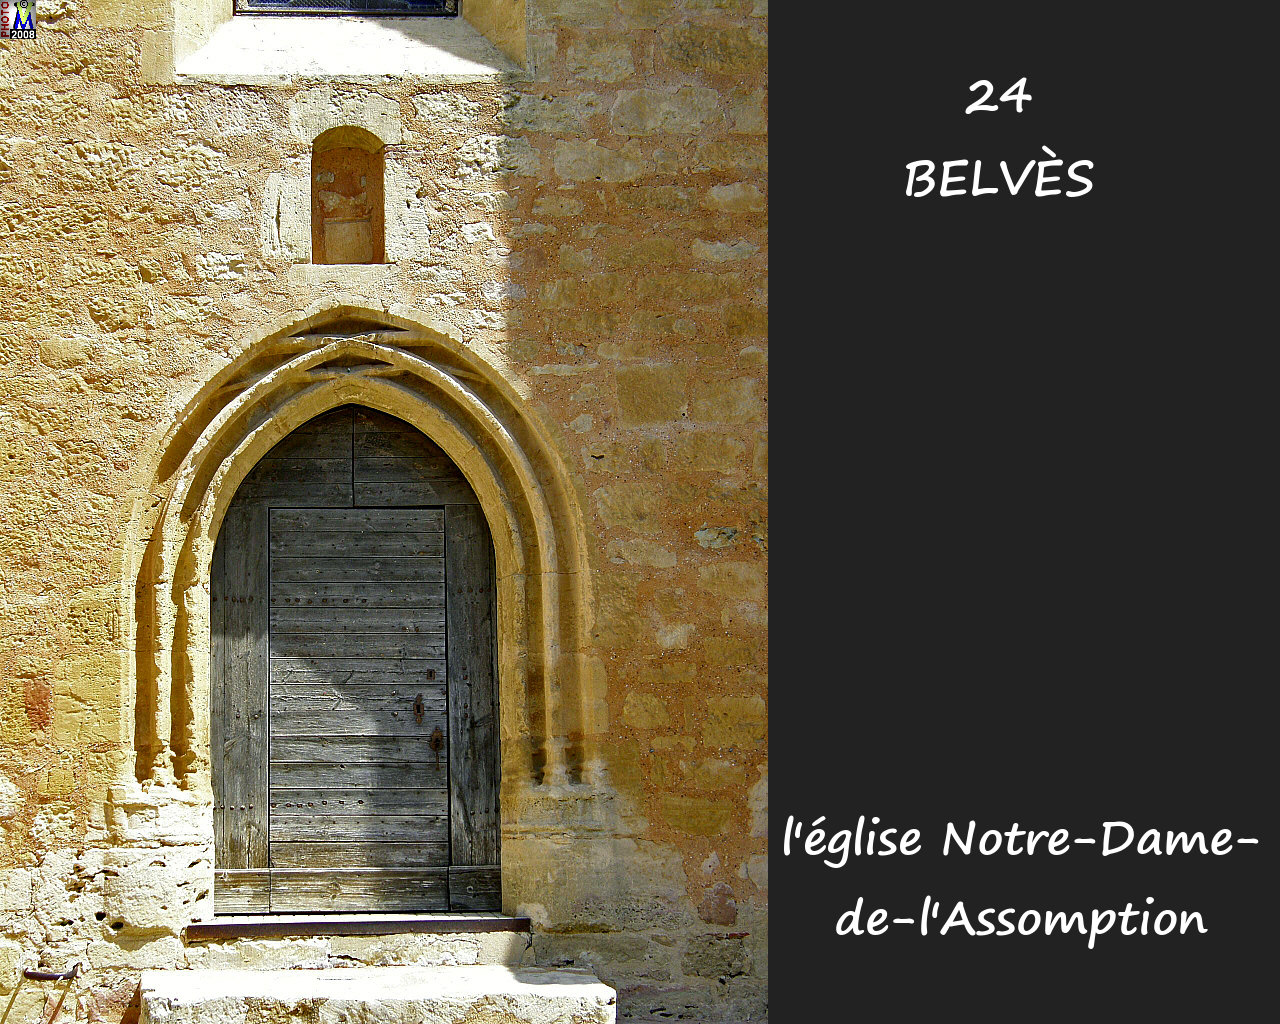 24BELVES_eglise_120.jpg